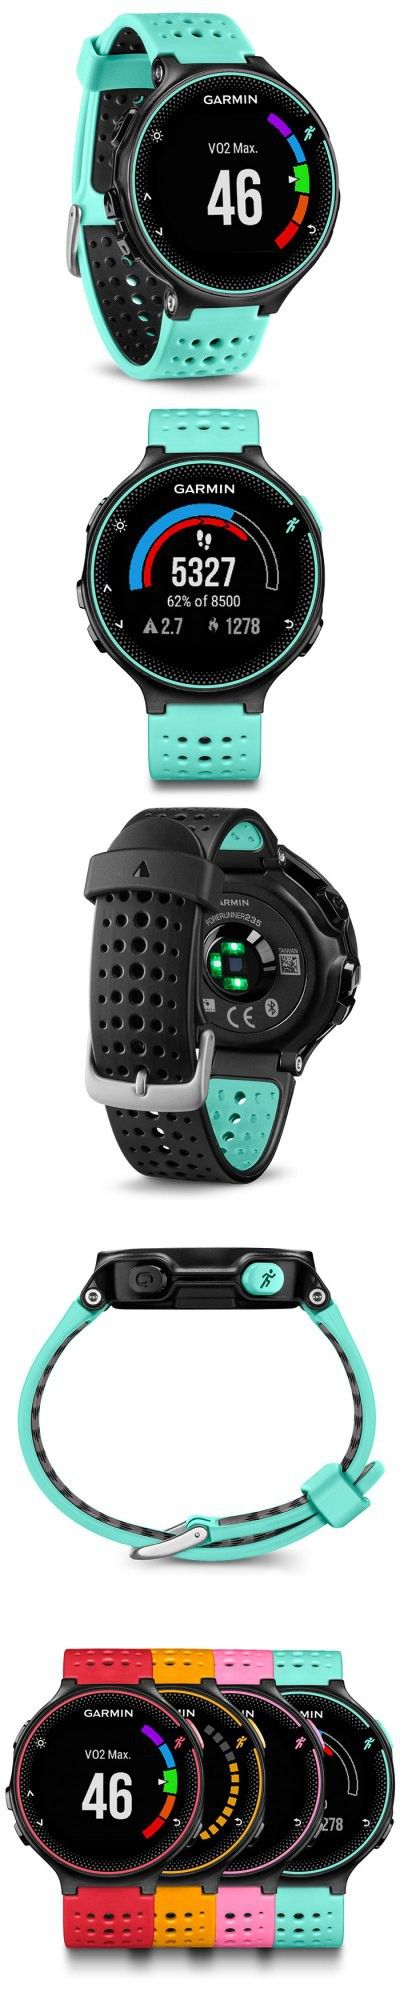 watches bluetooth uk ios smartwatch product electronic wearable samsung wrist watch tech digital wristwatch for phone sport android smart